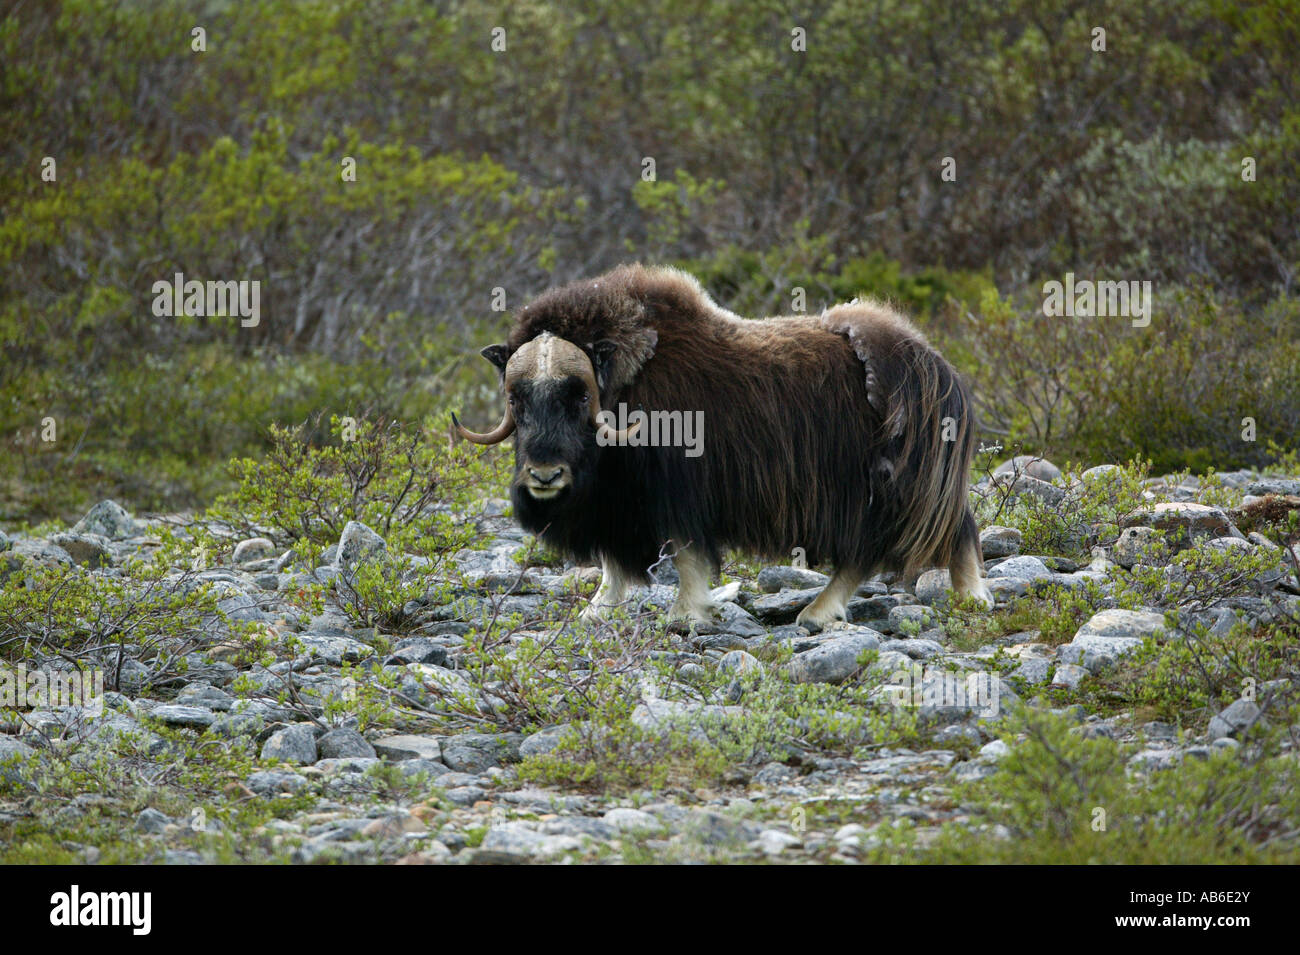 Muskox in Dovrefjell national park, Norway - Stock Image